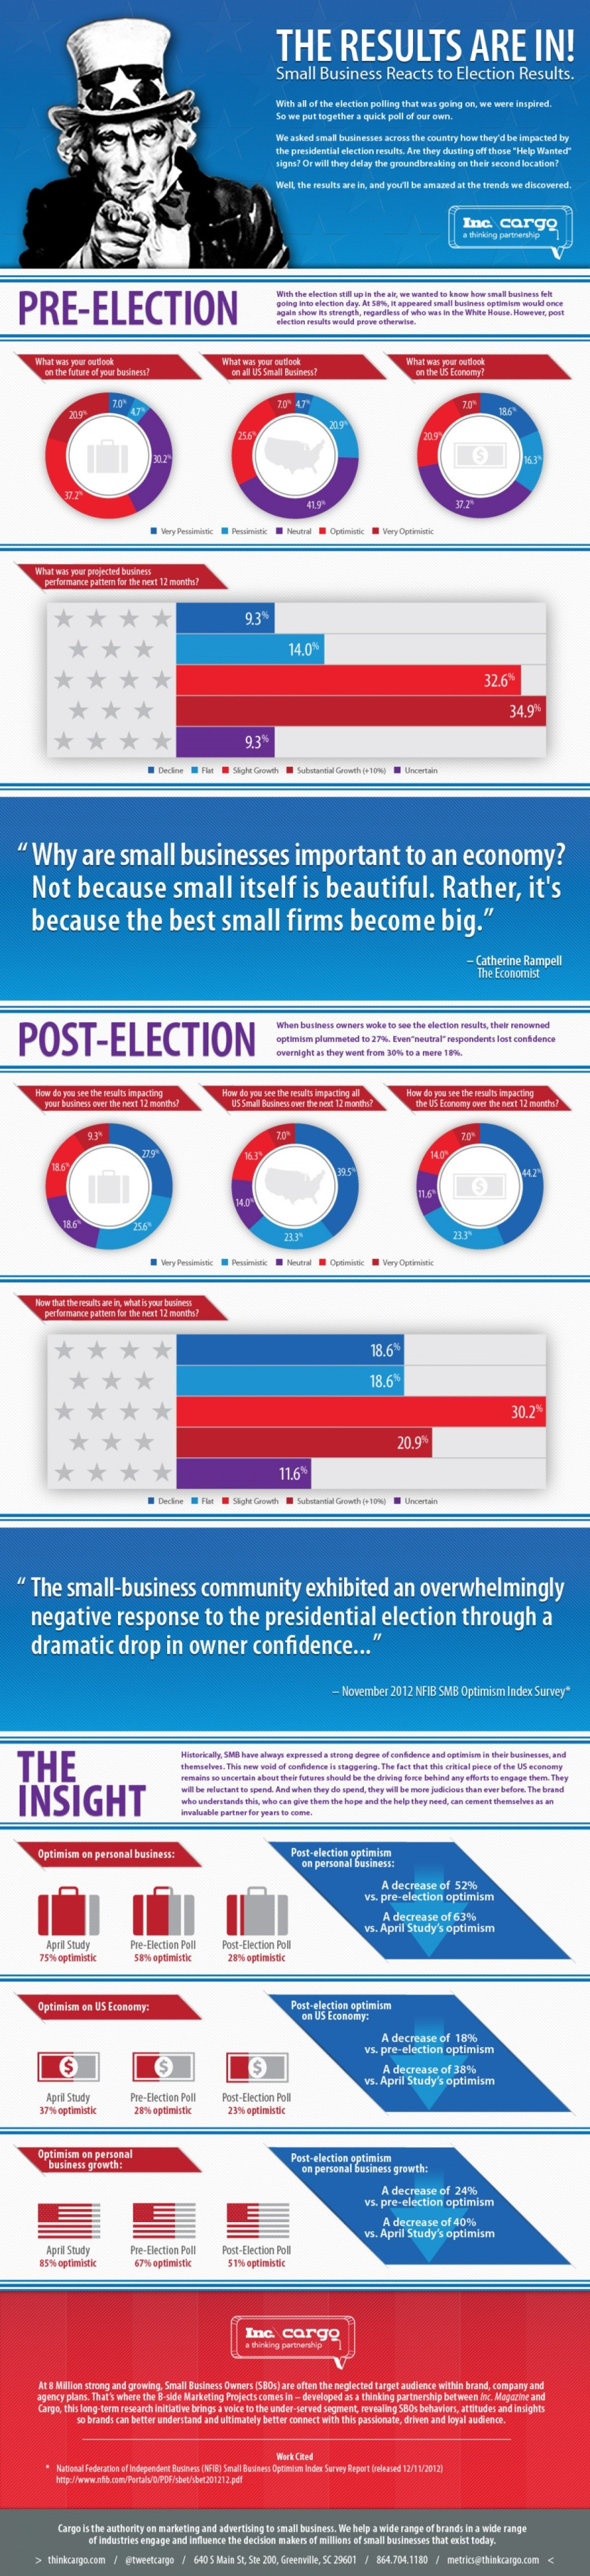 Small business reacts 2012 election results